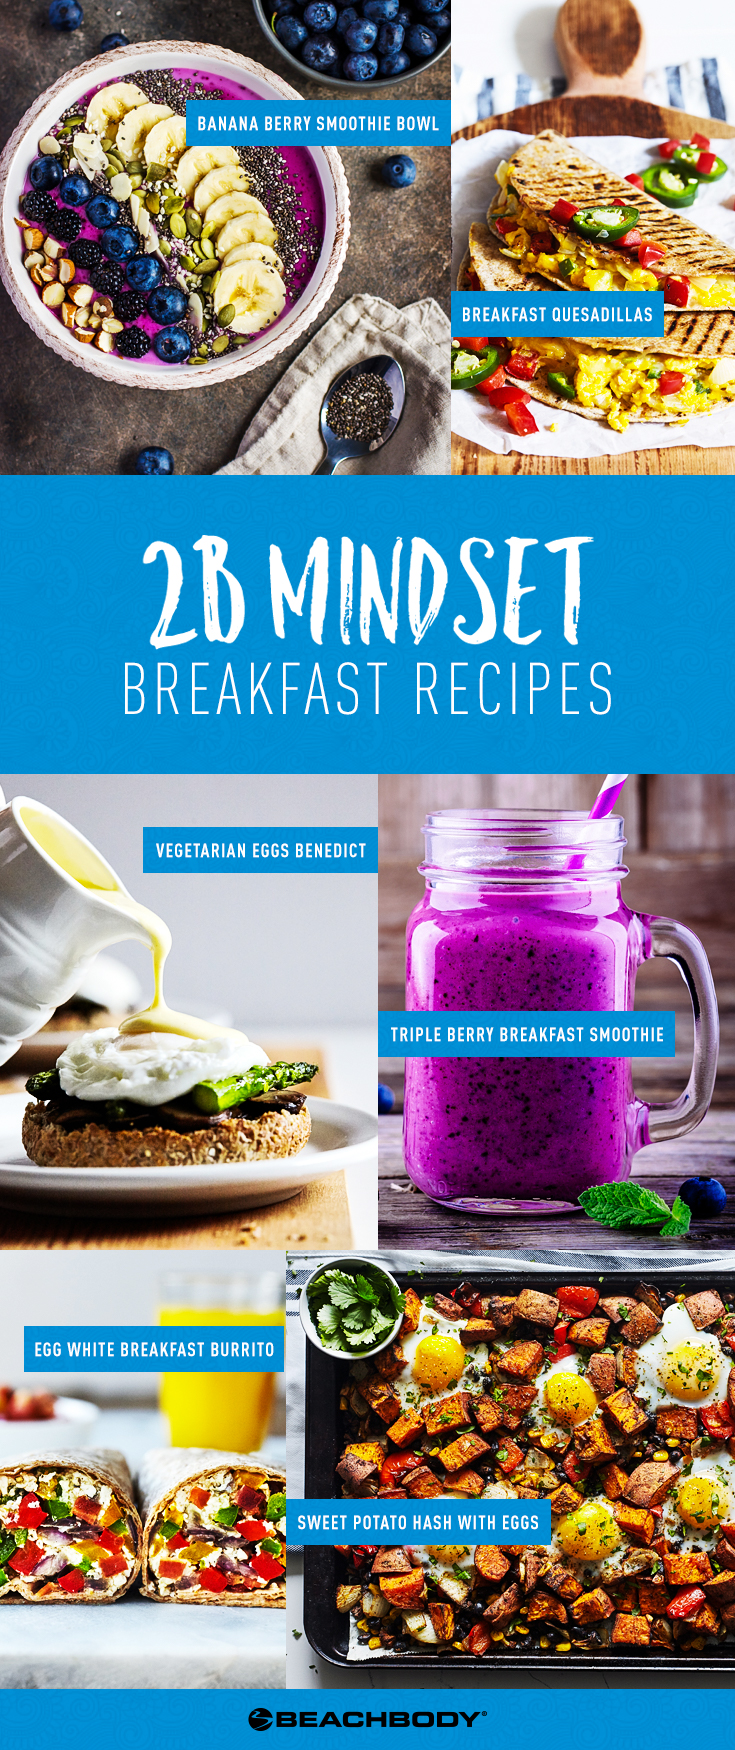 2B Mindset Recipes